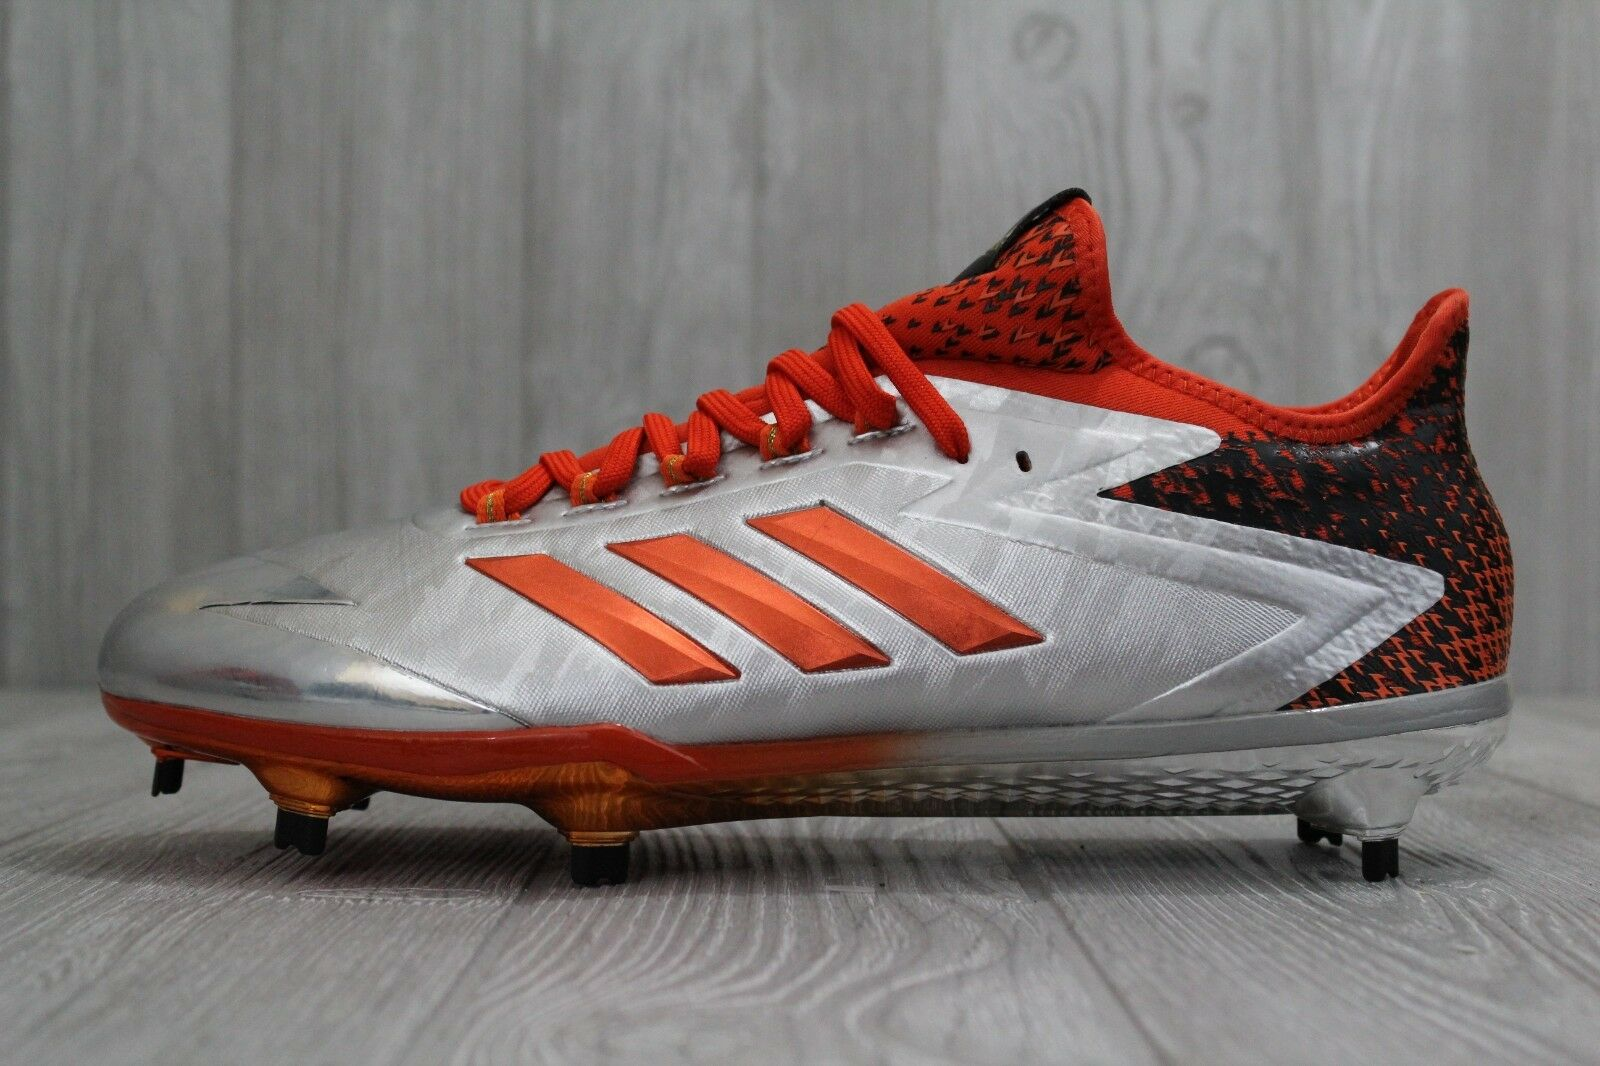 31 New Adidas Adizero Afterburner 4 Faded BY3680 Men's Baseball Cleats Size 11.5